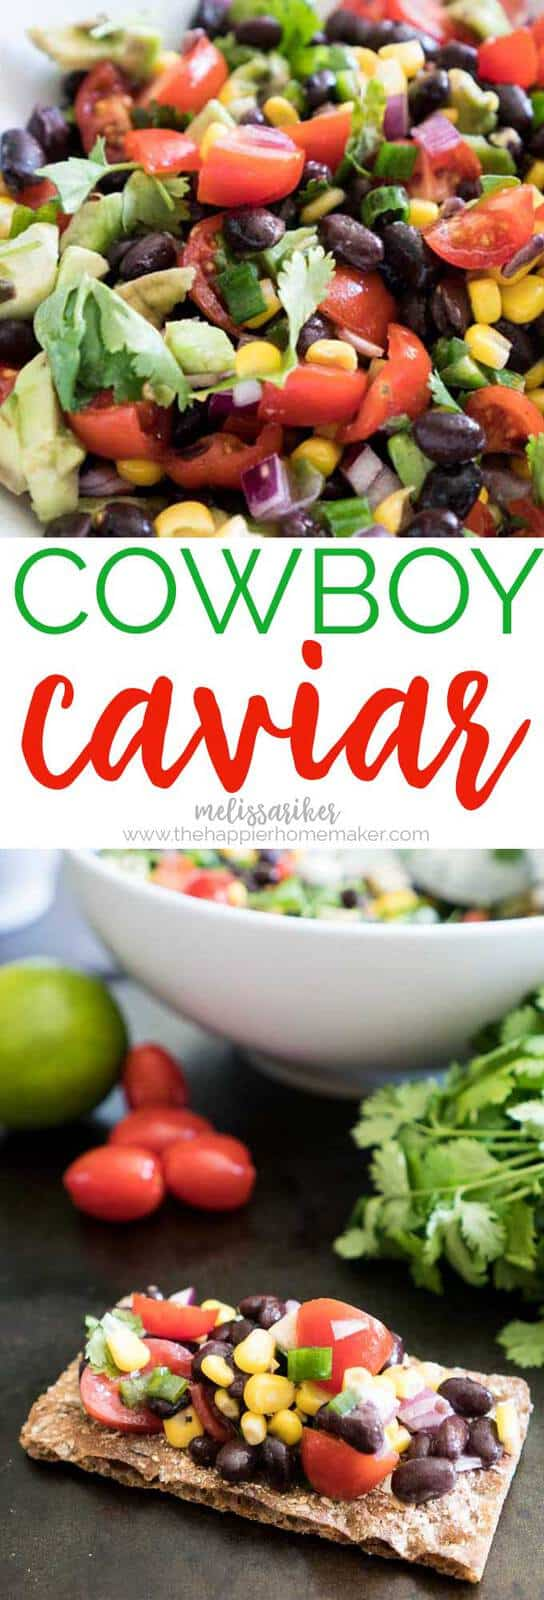 Create a delicious and colorful snack by throwing together an easy bowl of Cowboy Caviar - a black bean and corn salad perfectly flavored with cilantro and lime!